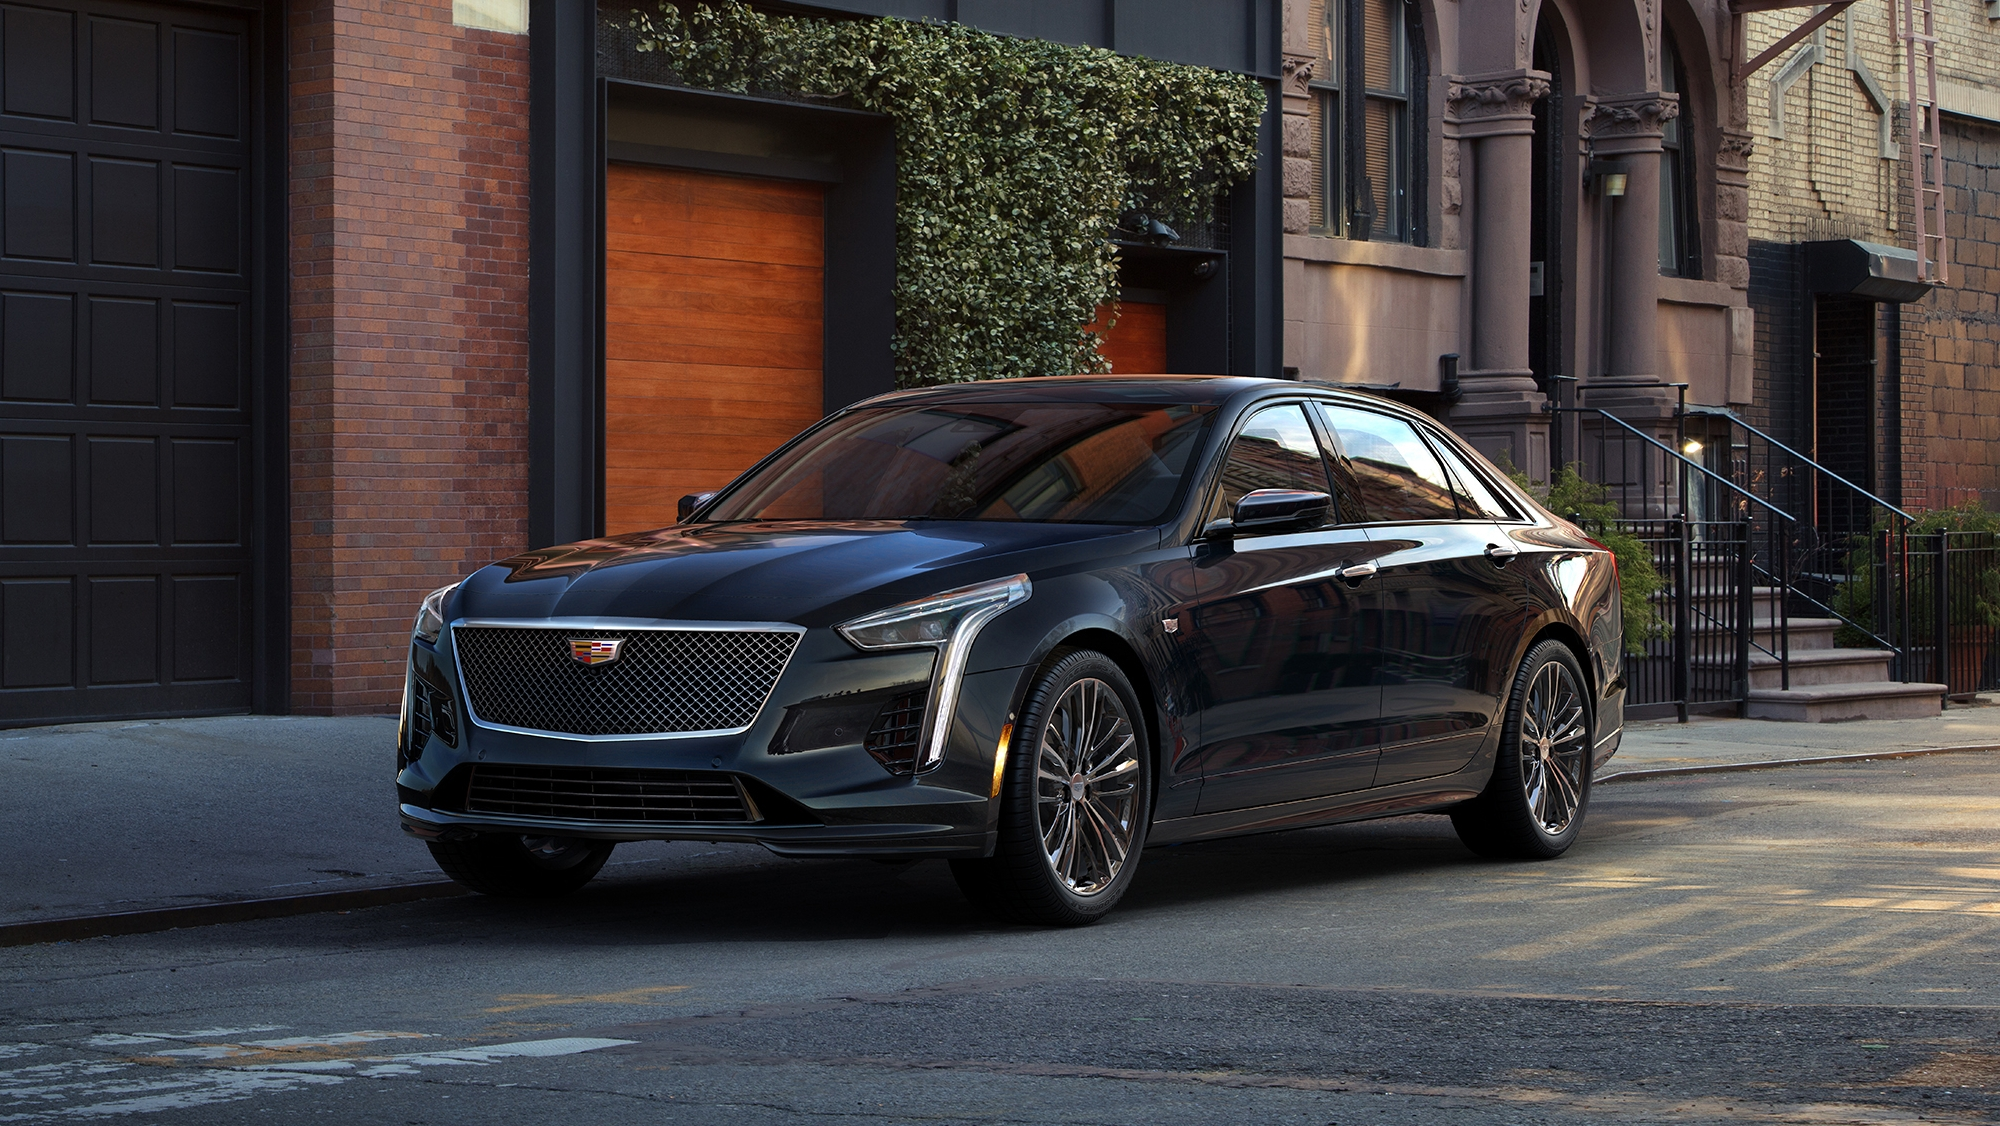 2019 Cadillac CT6 V-Sport Review - Top Speed